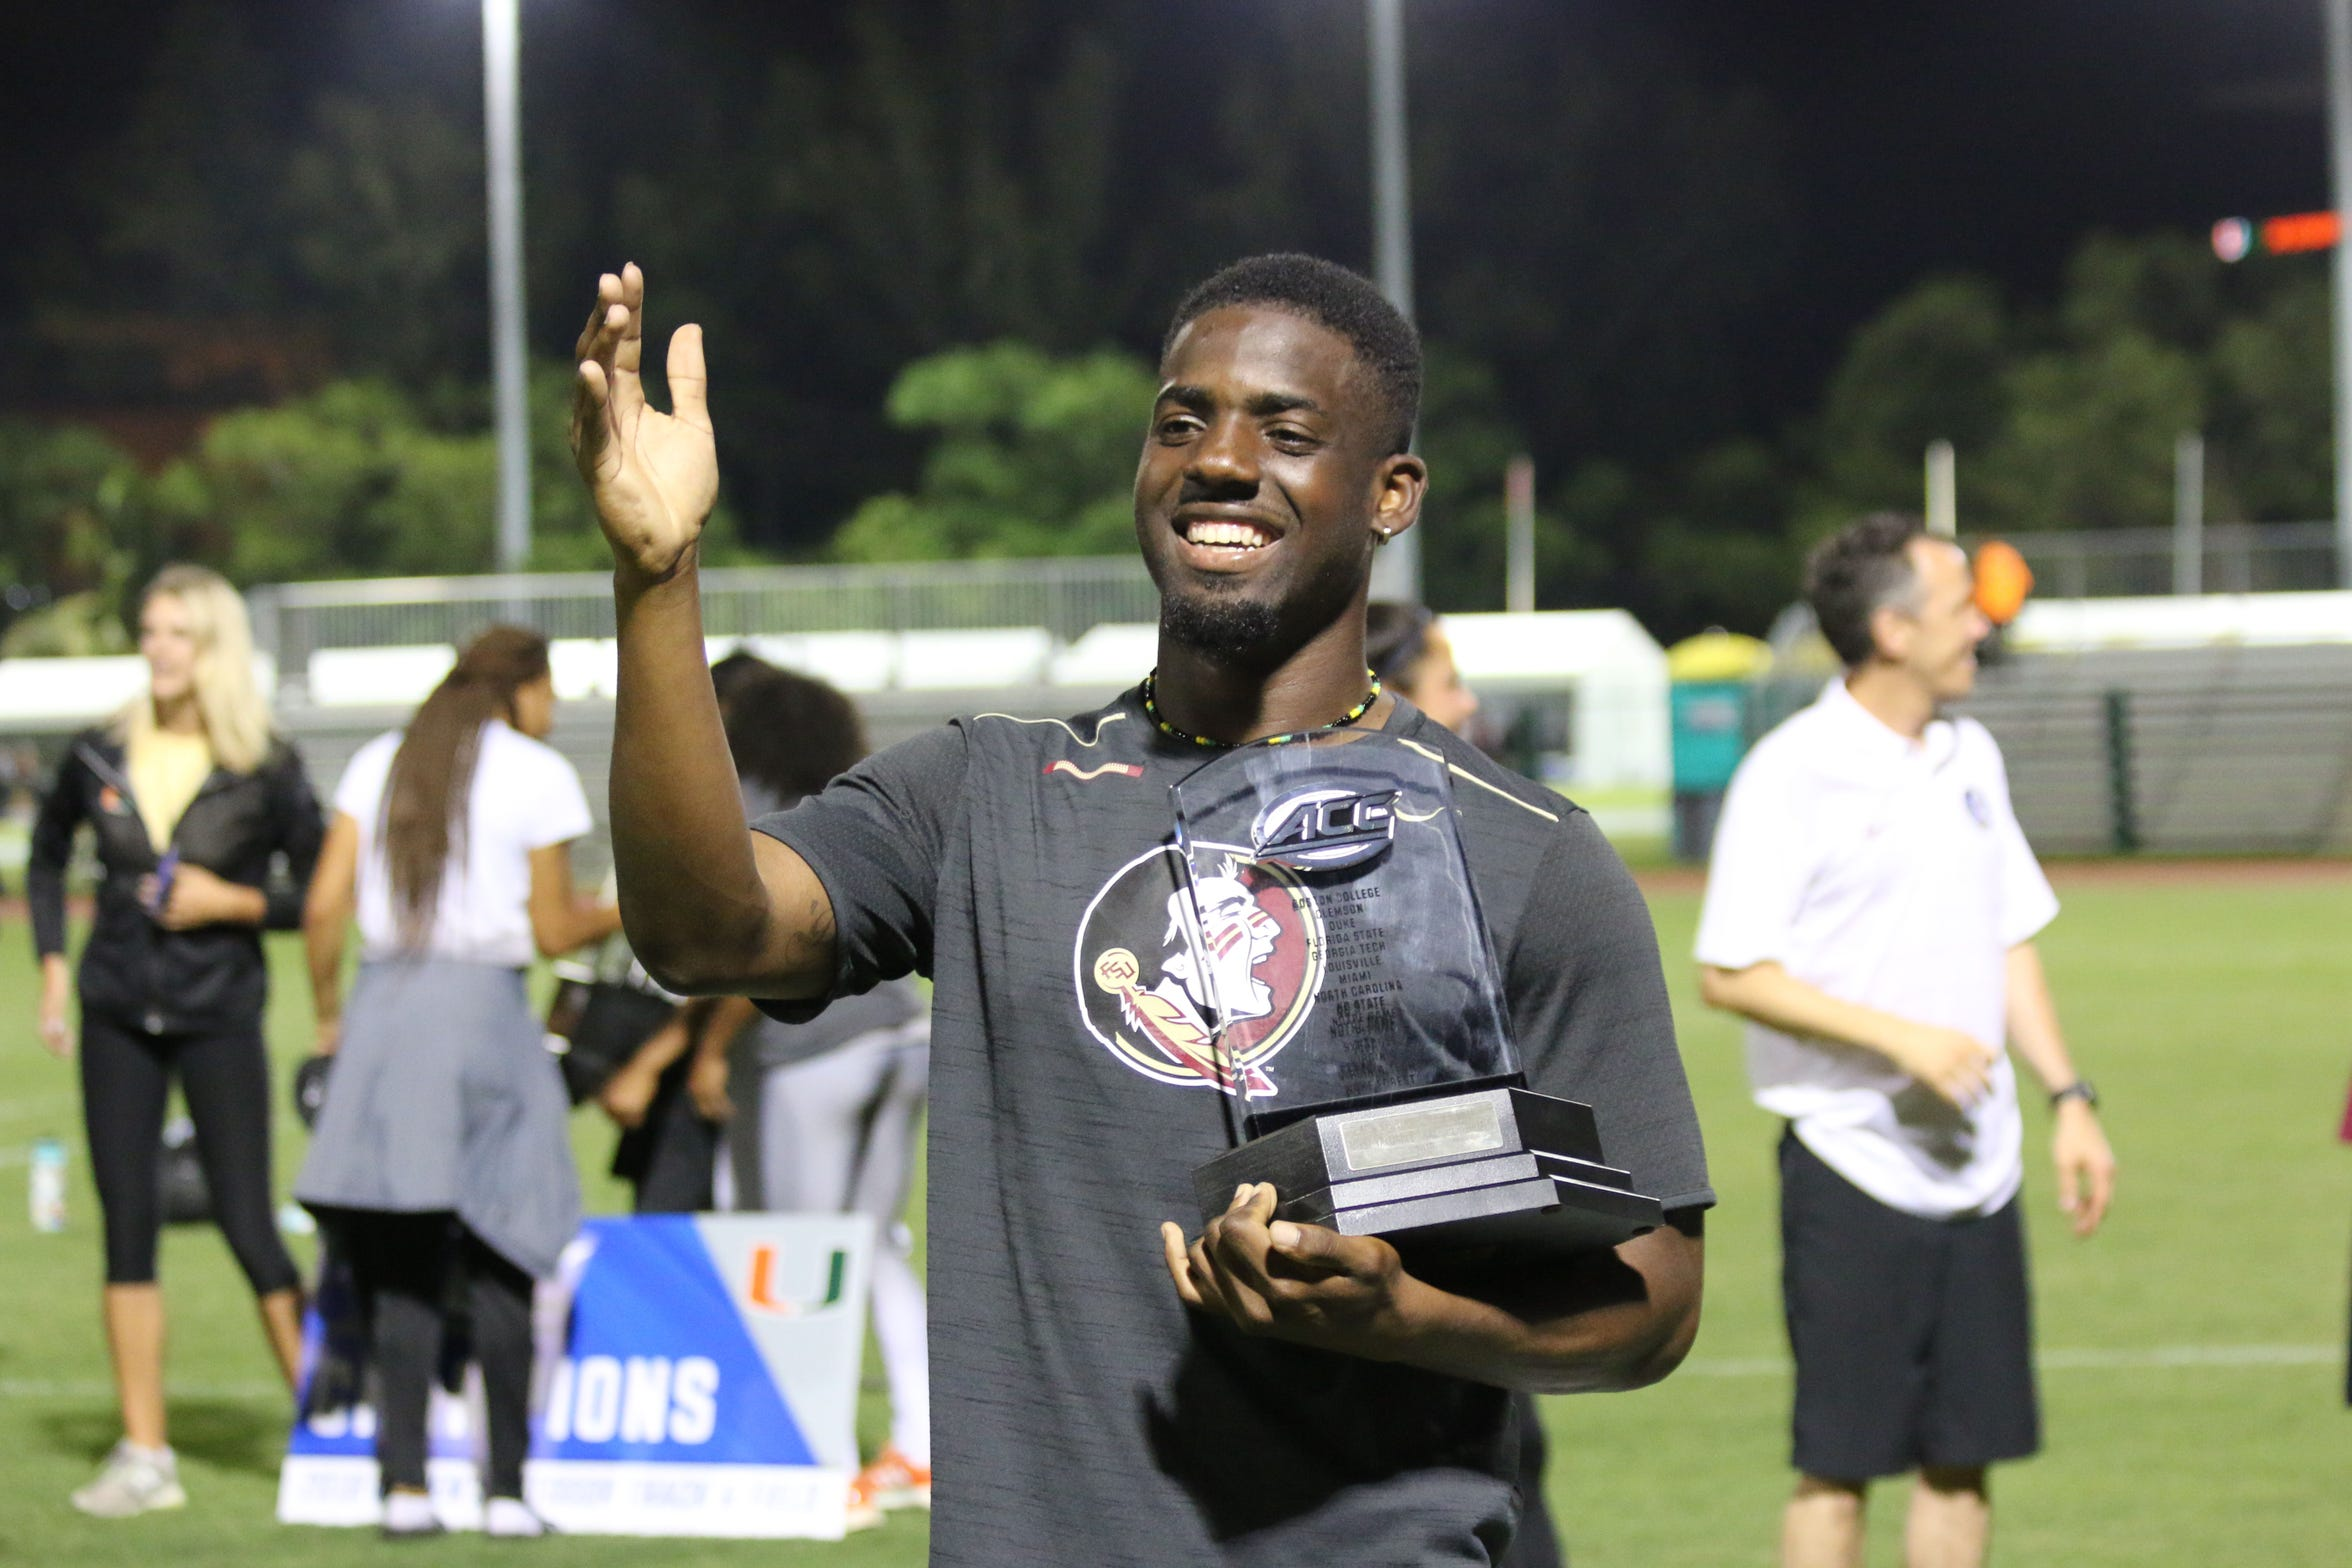 In 2018, Andre Ewers' MVP performance at the ACC Outdoor Track & Field Championship earned him a place among the Seminoles all-time greats.